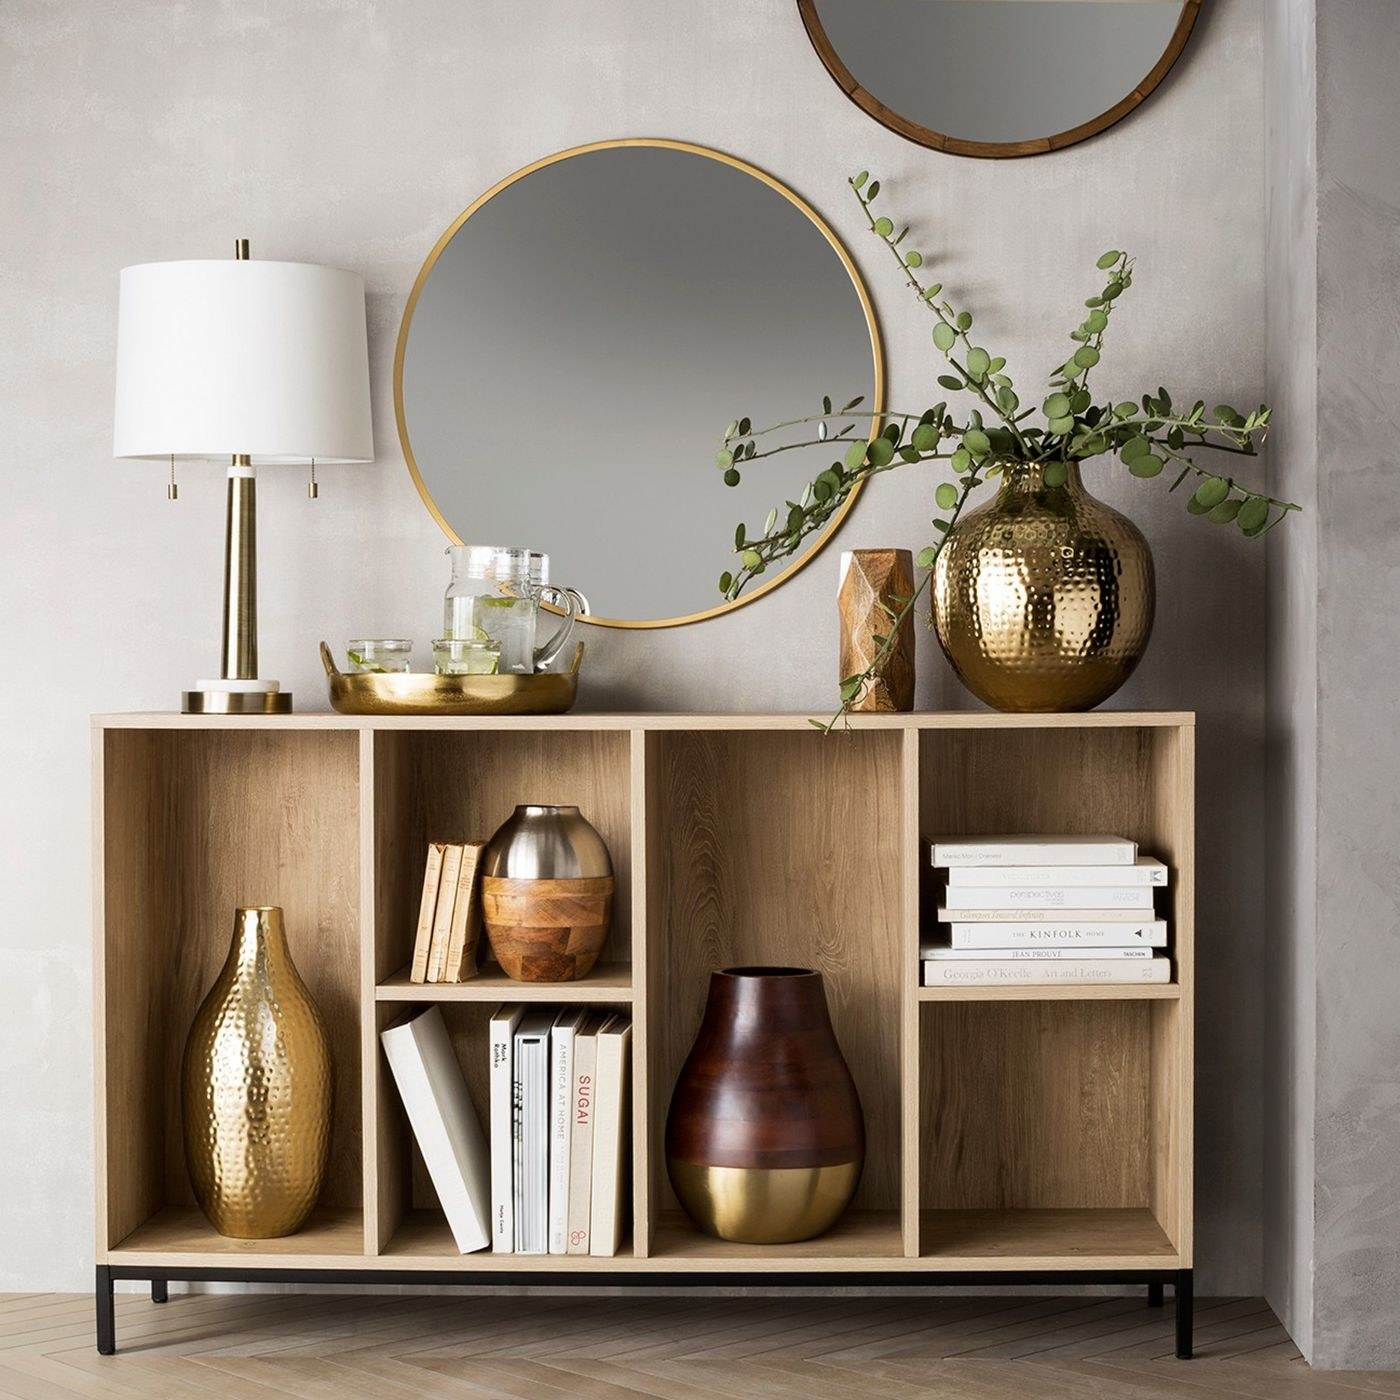 The round mirror in a brass finish, shown above a shelf